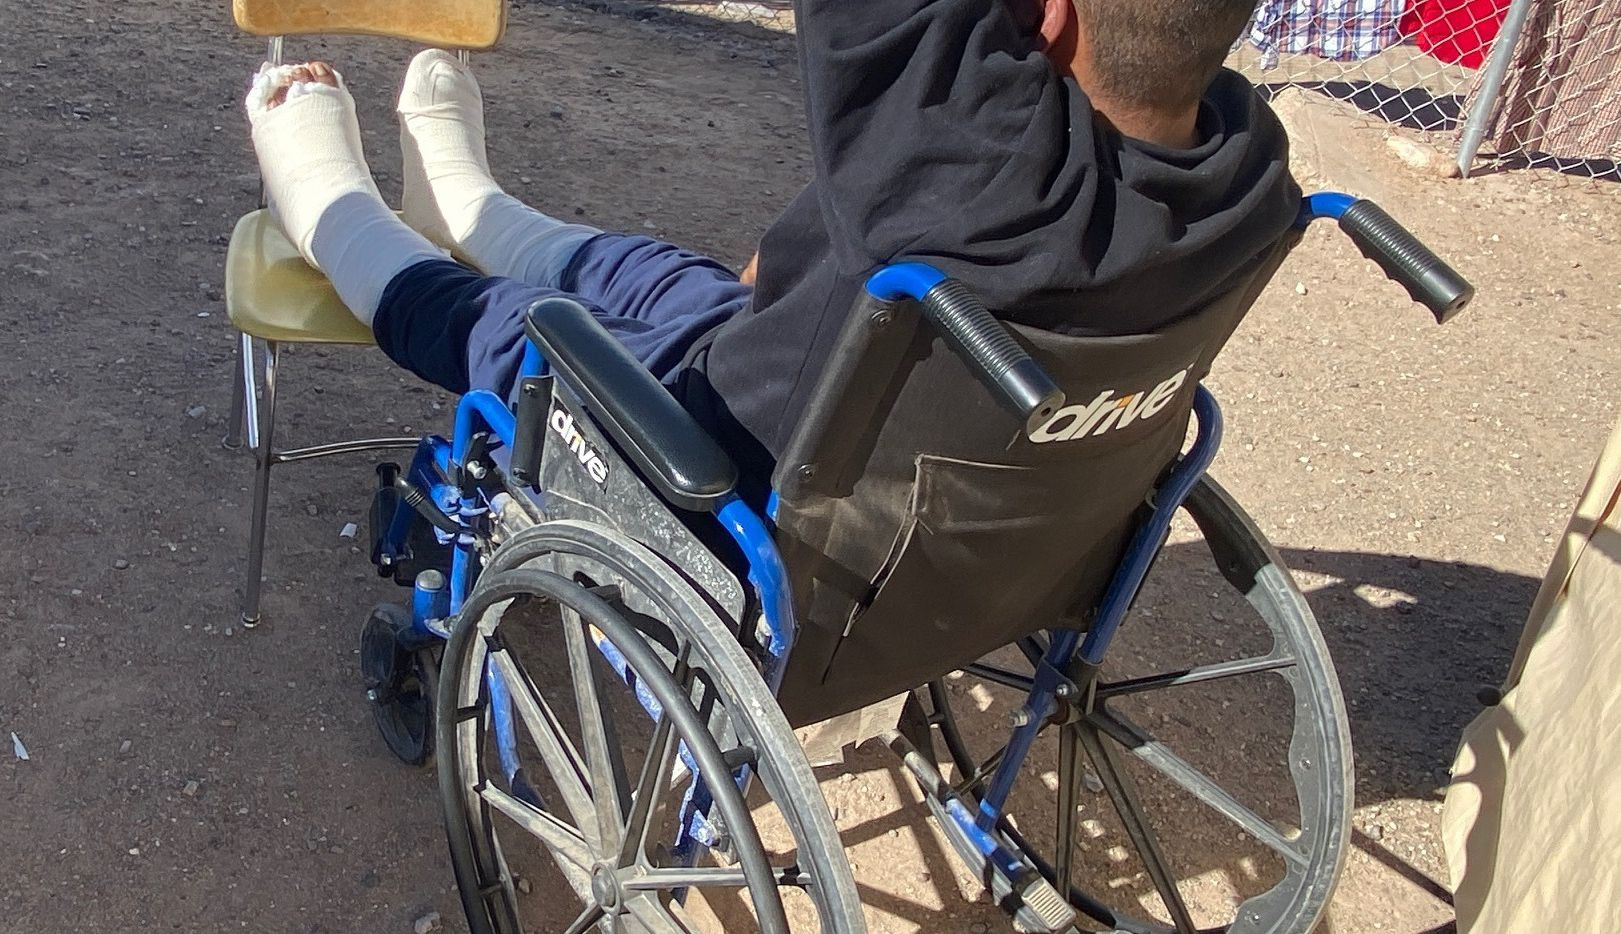 Pedro Gomez, from Guatemala, seen here on Feb. 9,, heals from two broken ankles he suffered after falling off border wall. His smuggler, he said, abandoned him after learning he wouldn't be able to walk for months.